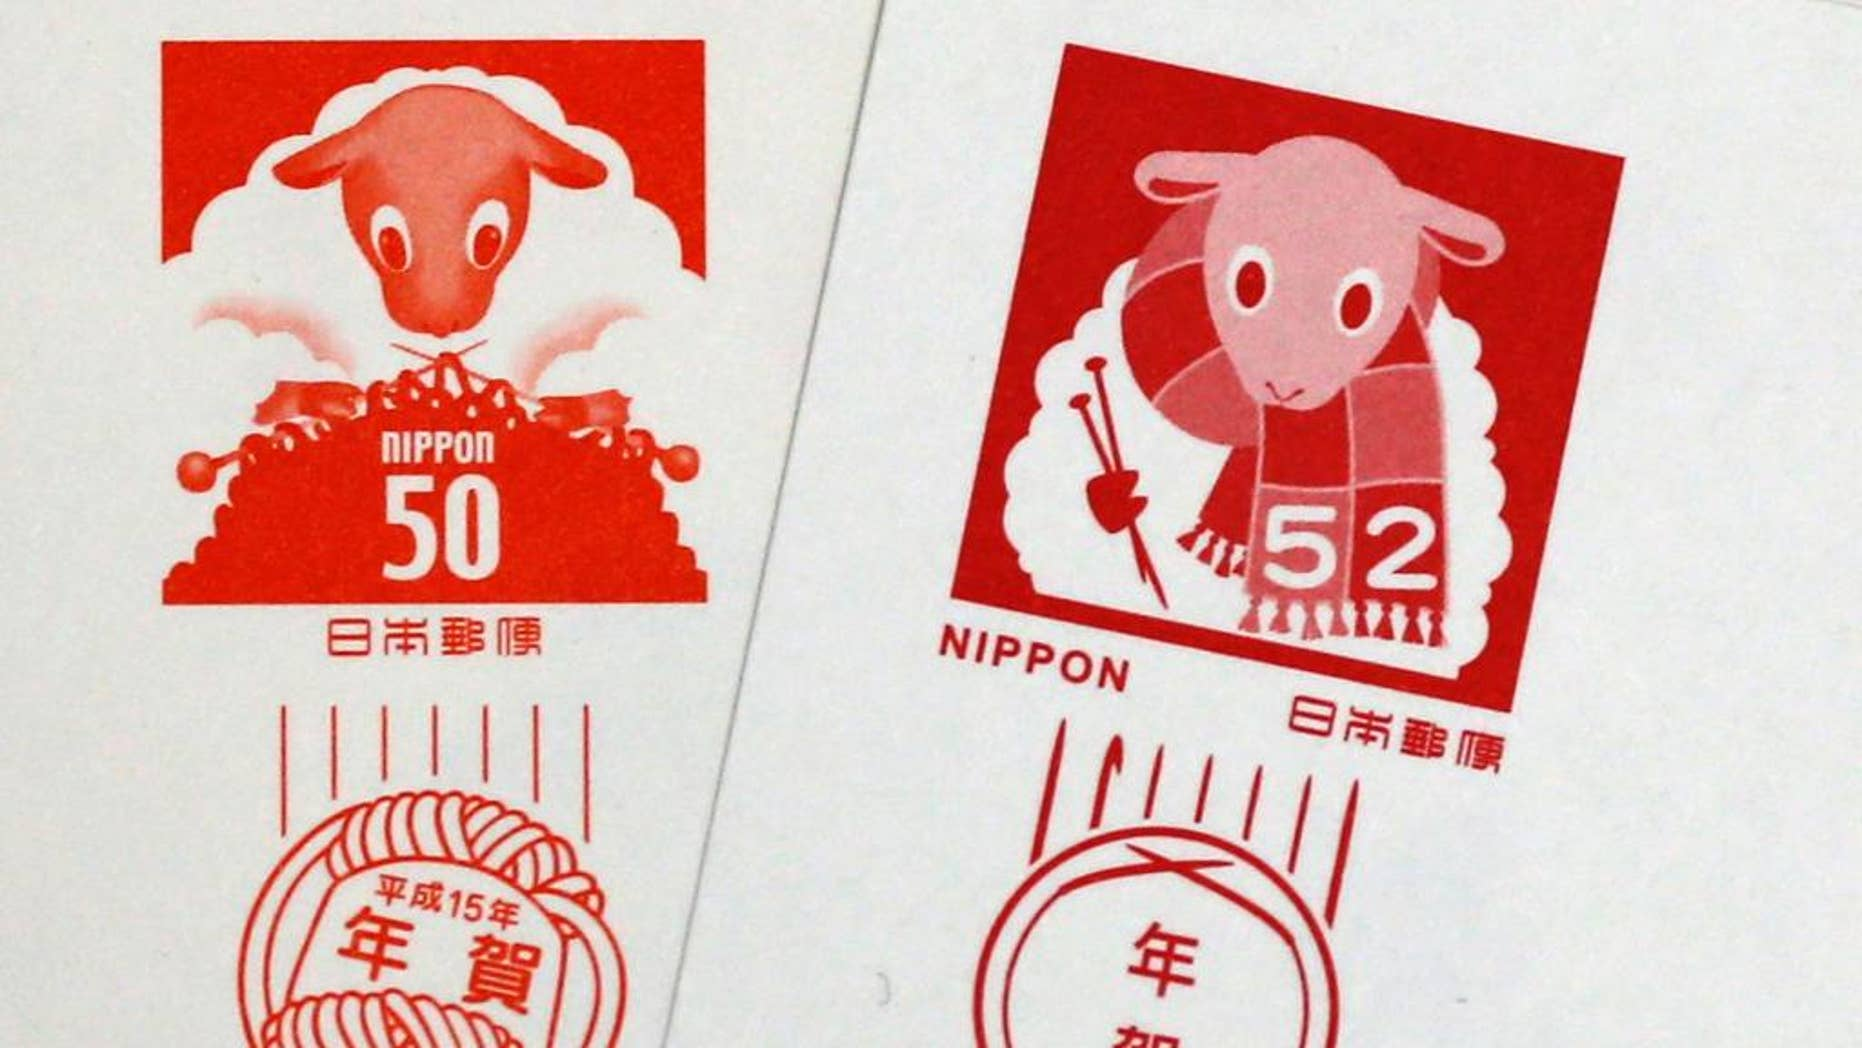 30 2014 photo sheep designs on postage stamps are seen